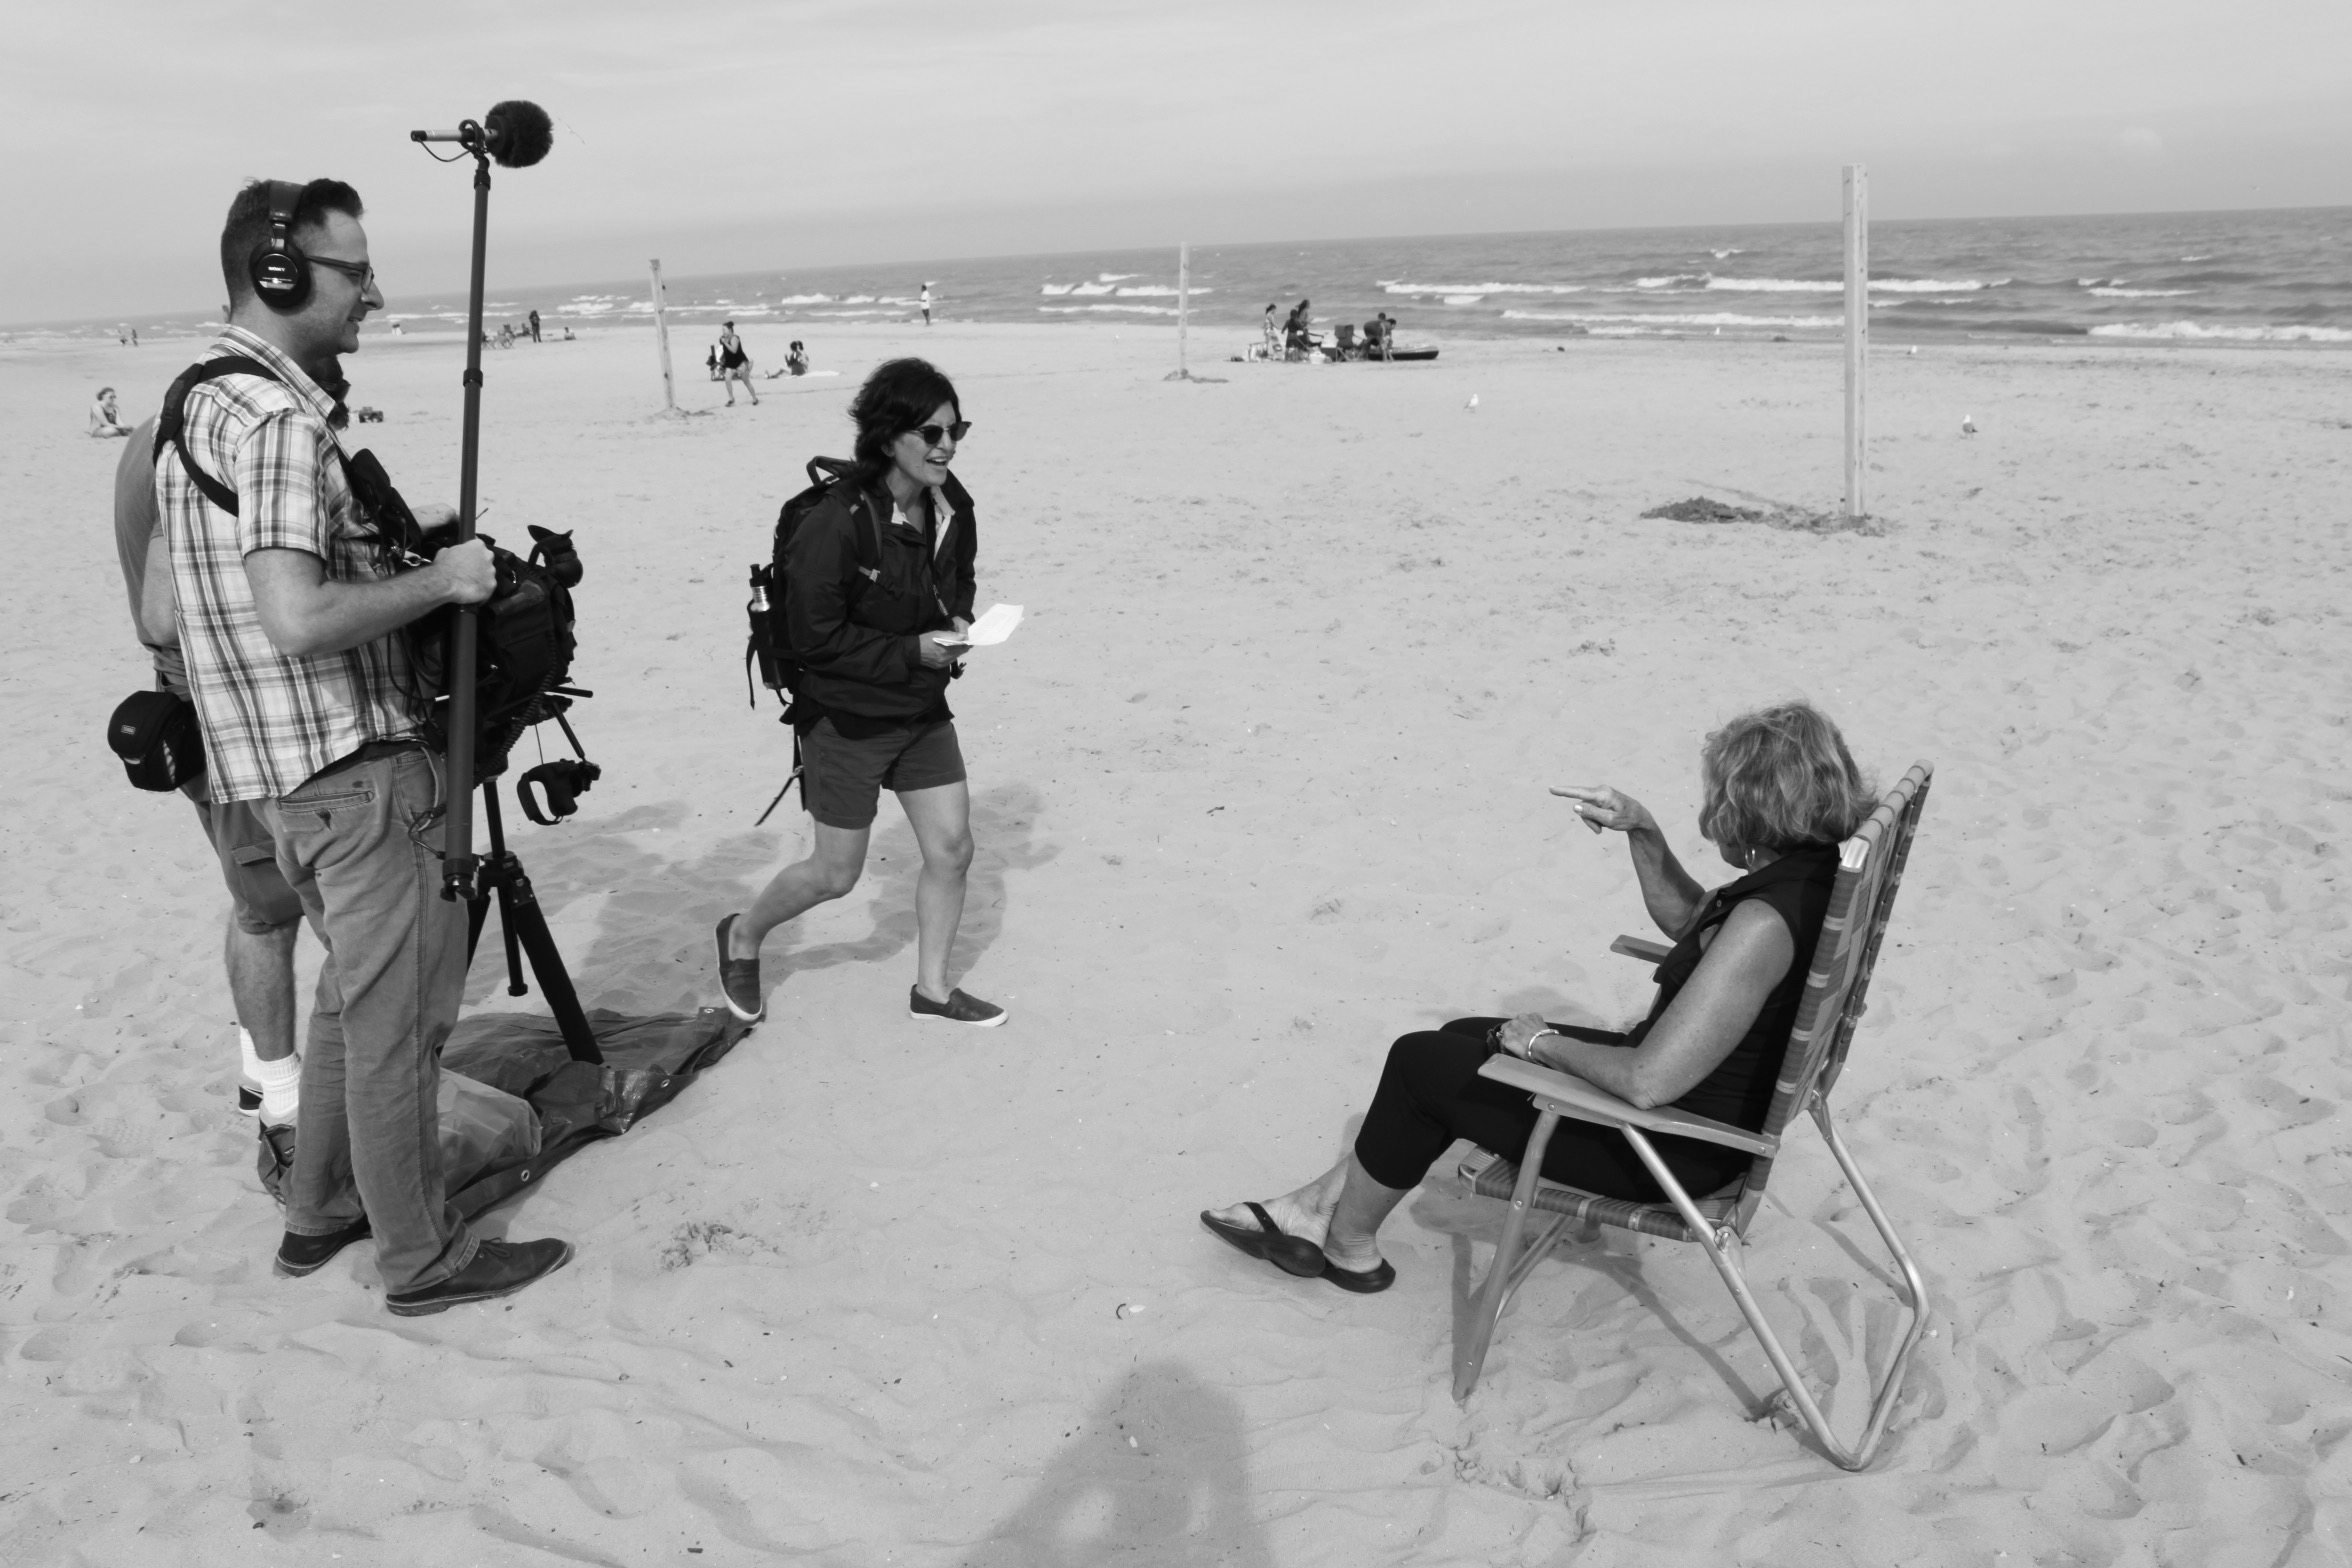 Director Deb Tolchinsky filming the documentary True Memories and Other Falsehoods with Penny Beerntsen at Neshotah beach in Two Rivers, Wisconsin